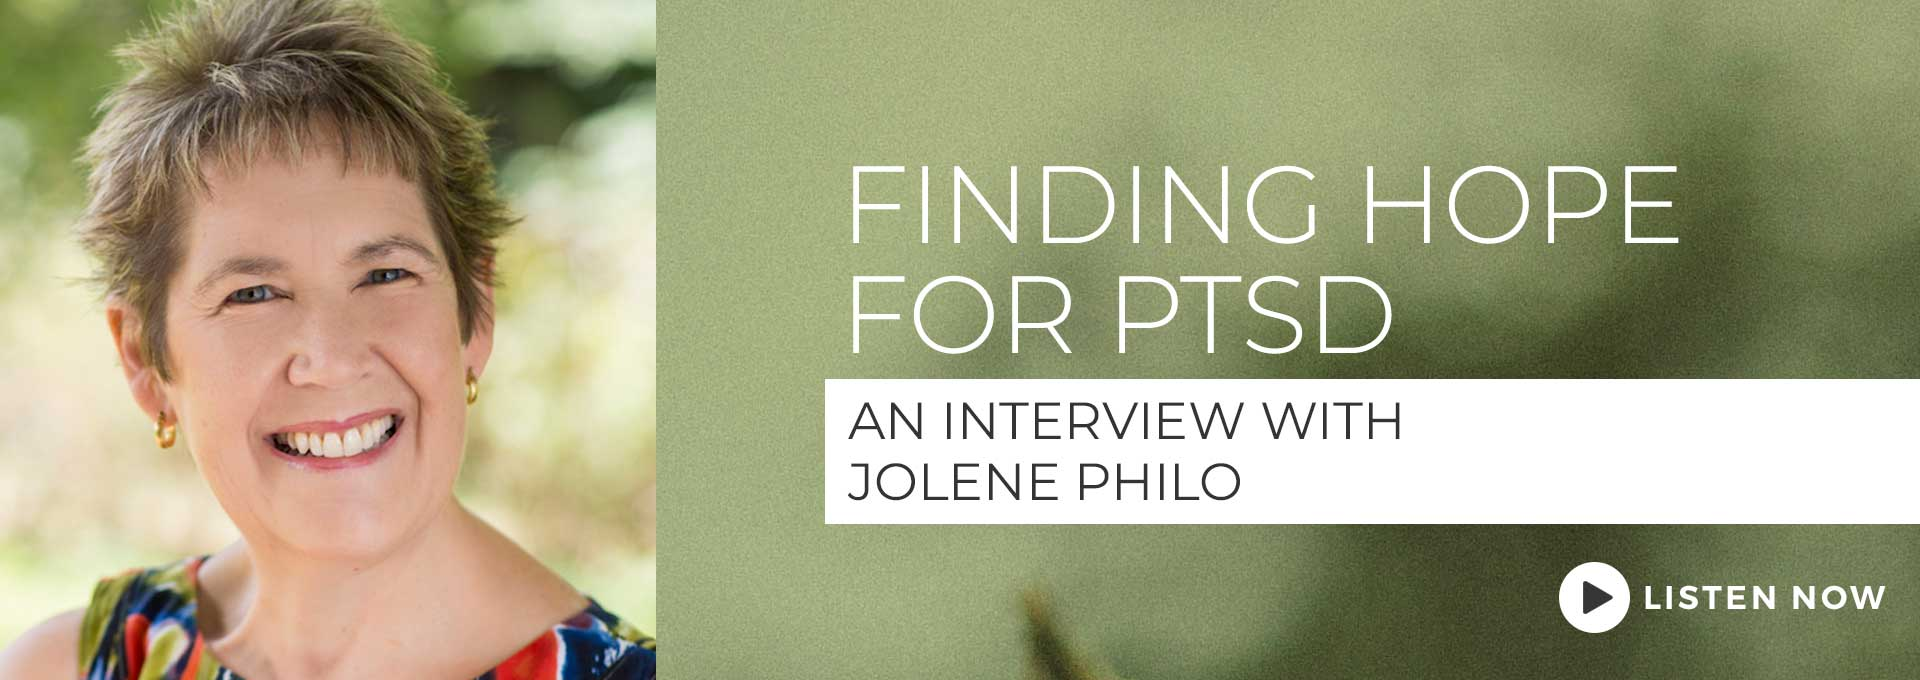 An Interview with Jolene Philo